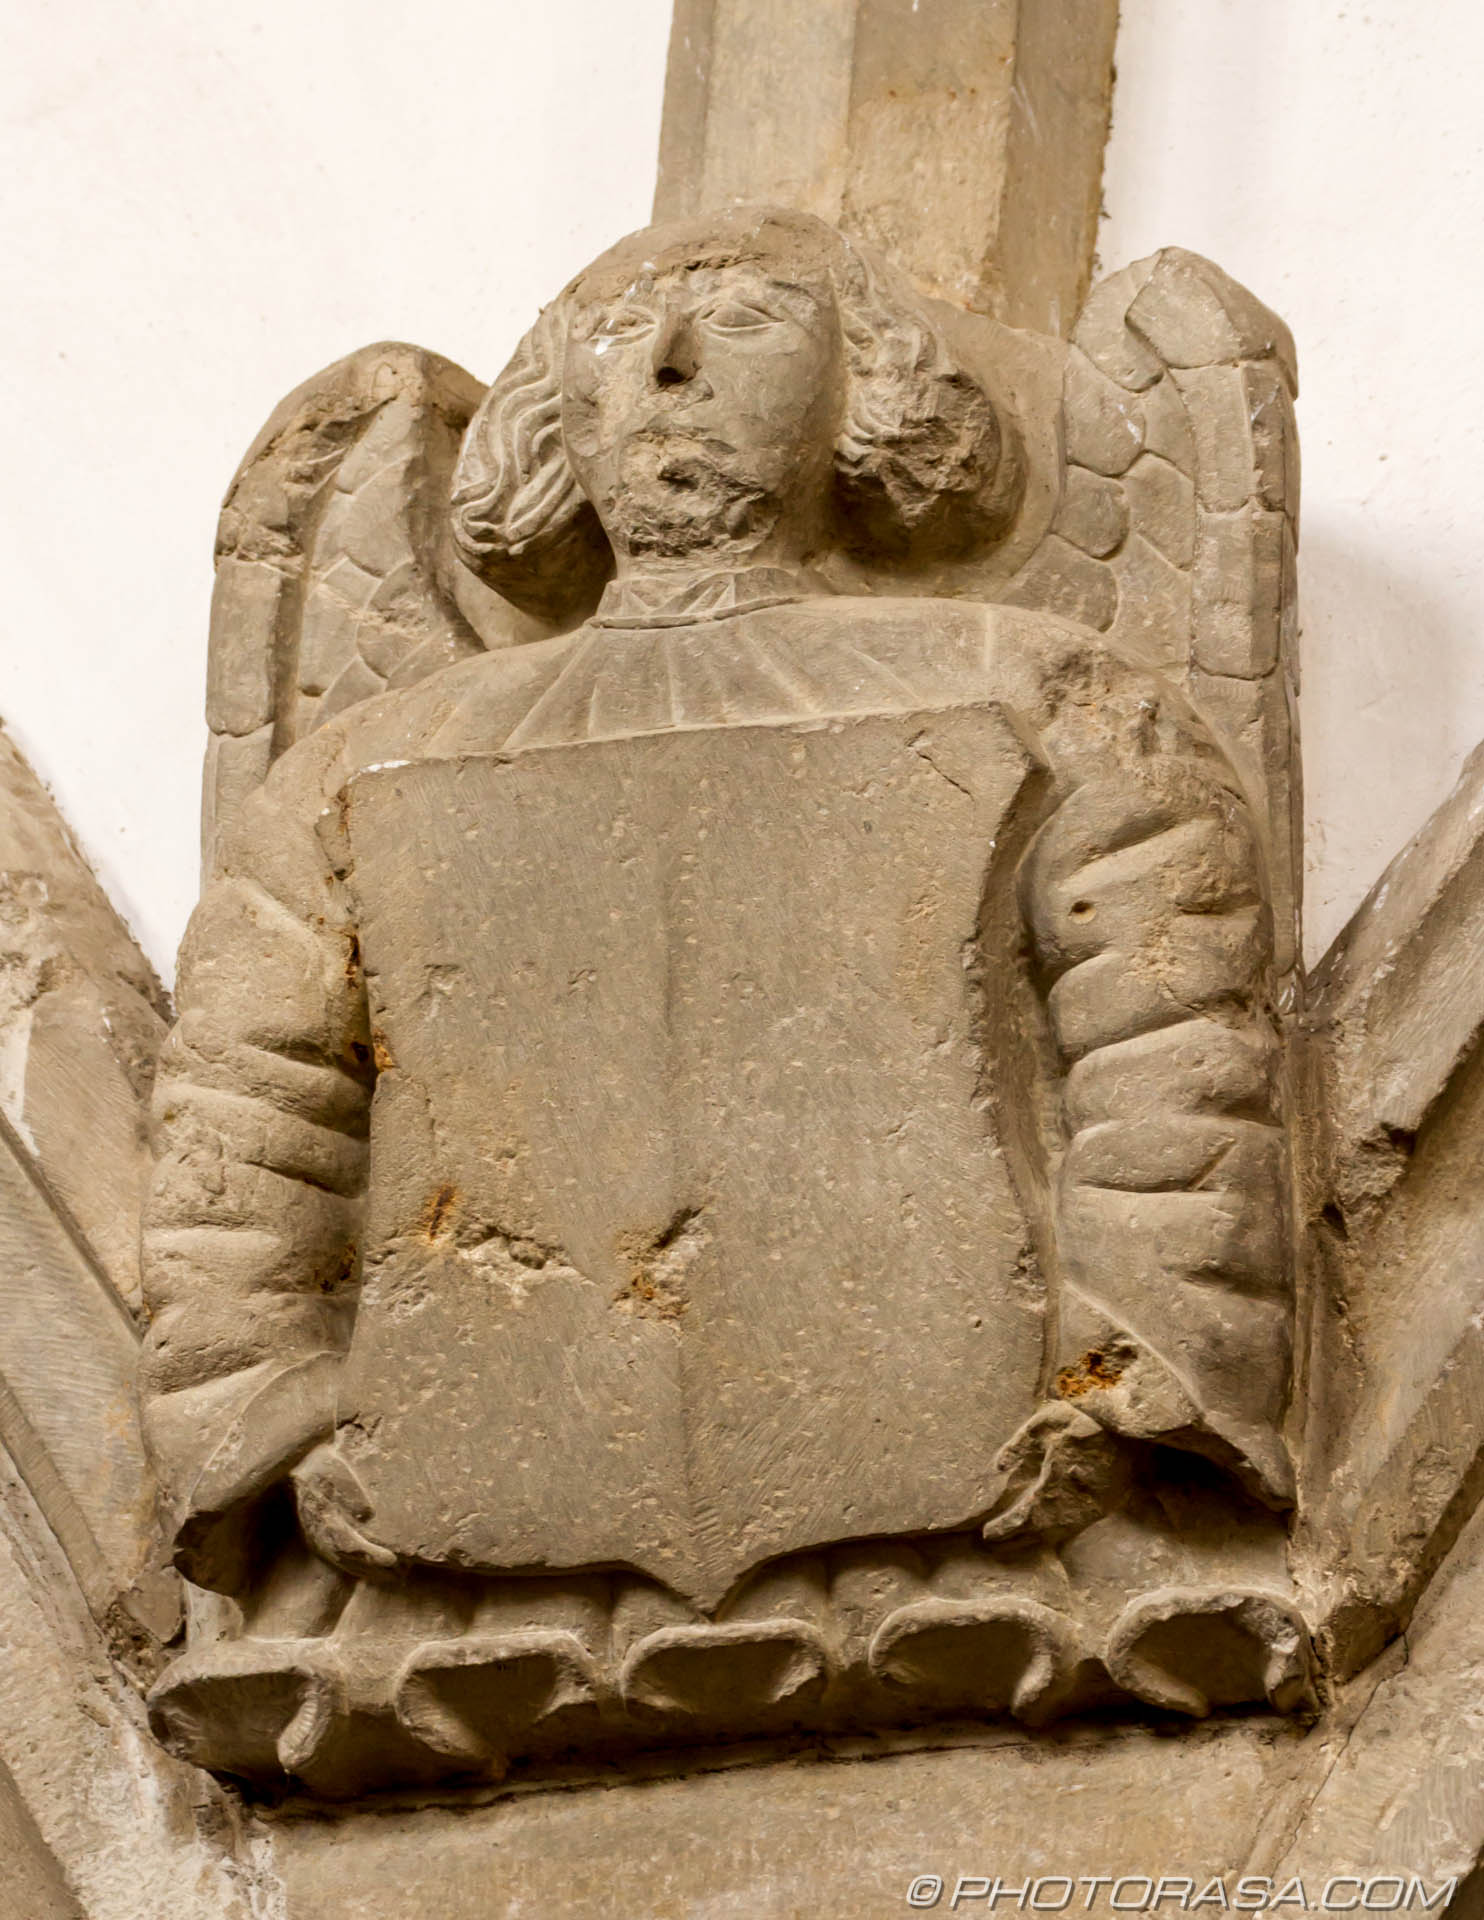 http://photorasa.com/st-dunstans-church-cranbrook/angelic-stone-wall-carving/